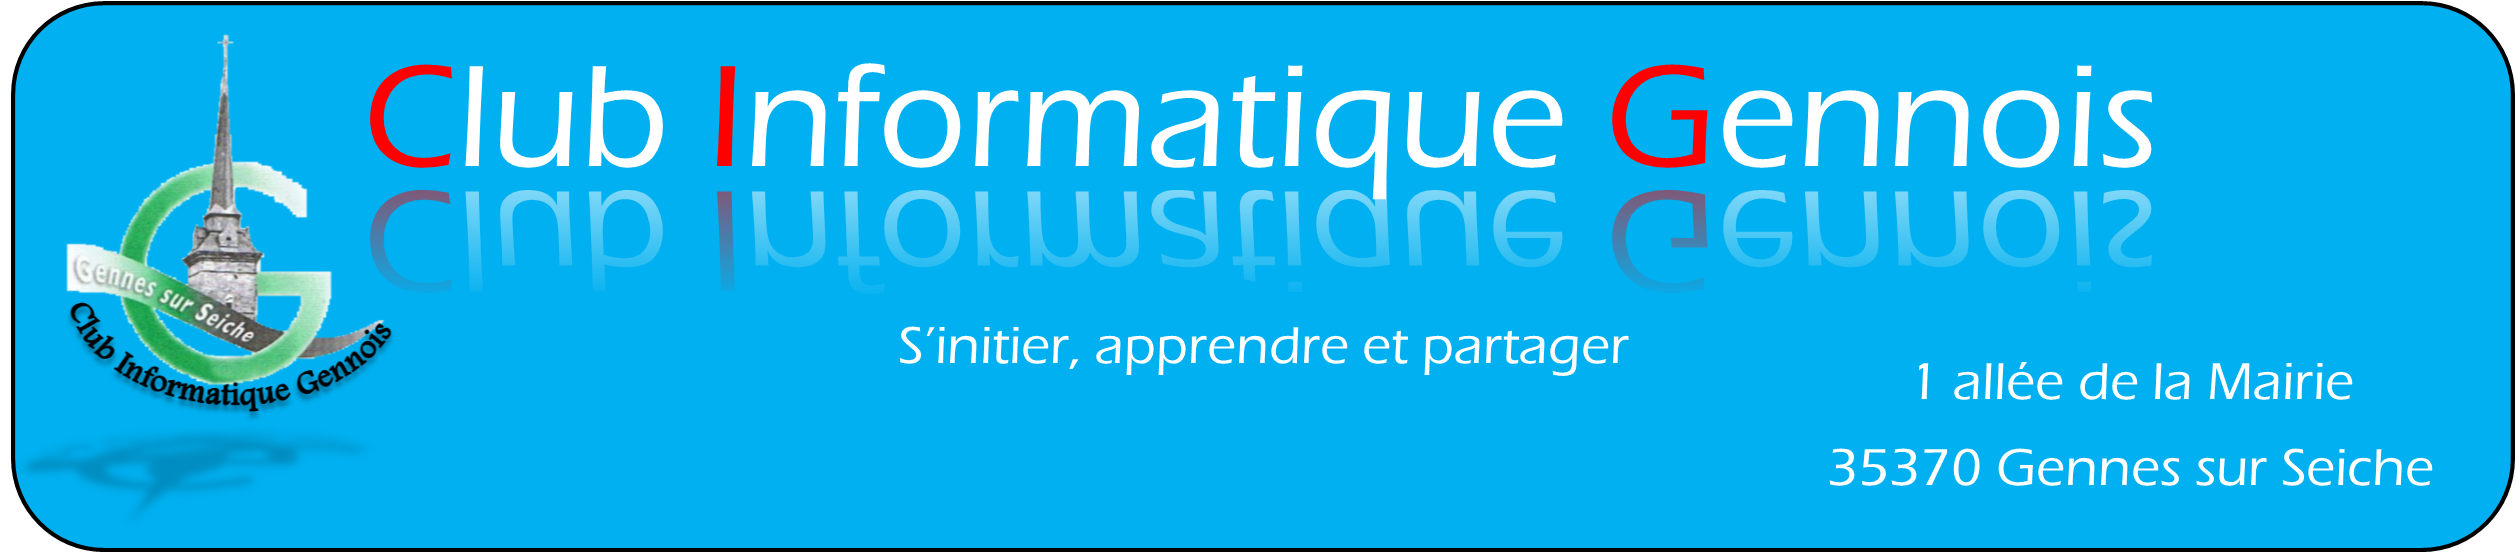 Club Informatique Gennois